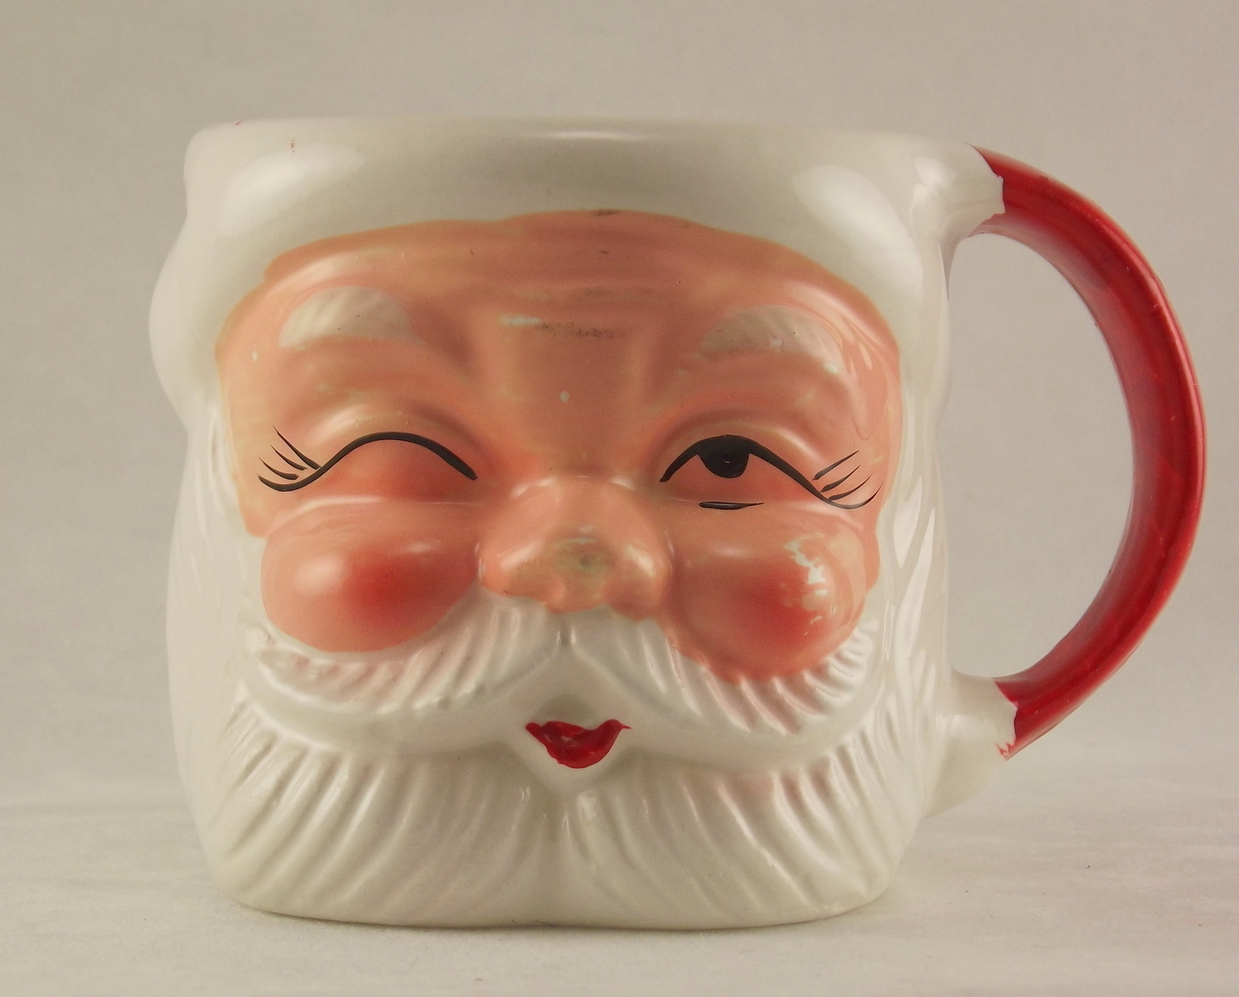 Vintage winking Santa ceramic collectible Christmas holiday mug made in Japan